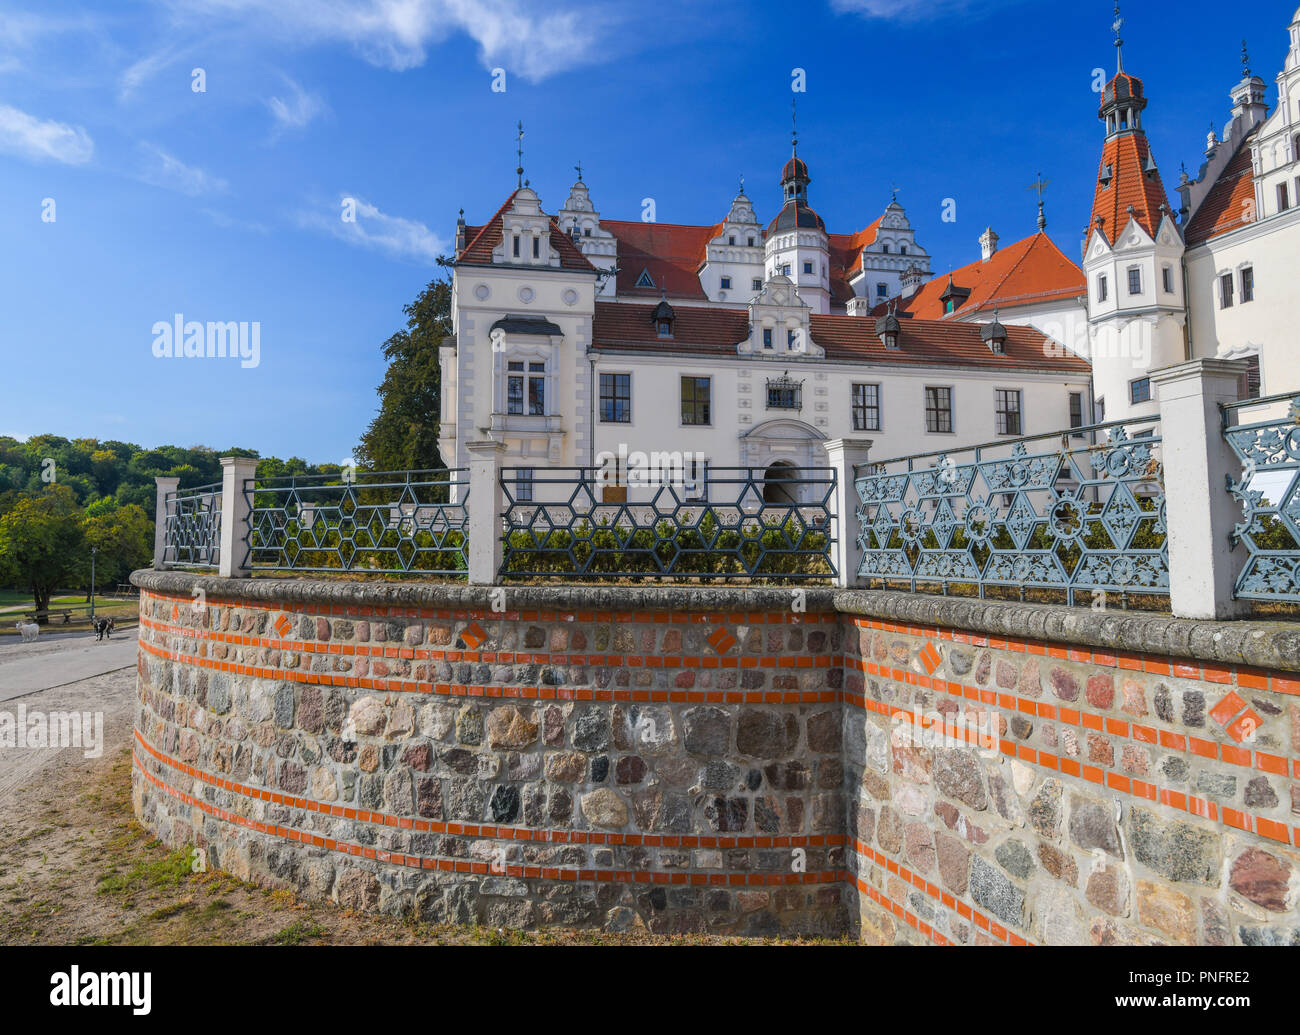 21 September 2018, Brandenburg, Boitzenburg: Boitzenburg Castle. Almost 15 years after renovation work on the Boitzenburg castle complex, four defendants have to answer to the Potsdam Regional Court for subsidy fraud. The neo-renaissance castle is picturesquely situated between forests and fields. Boitzenburg Castle was first mentioned in documents as a castle complex in 1276. But it's probably older. The manor house in the Boitzenburger Land is one of the largest castles in the Uckermark. For centuries it was the ancestral seat of the von Arnim family and today houses a children's and youth h - Stock Image